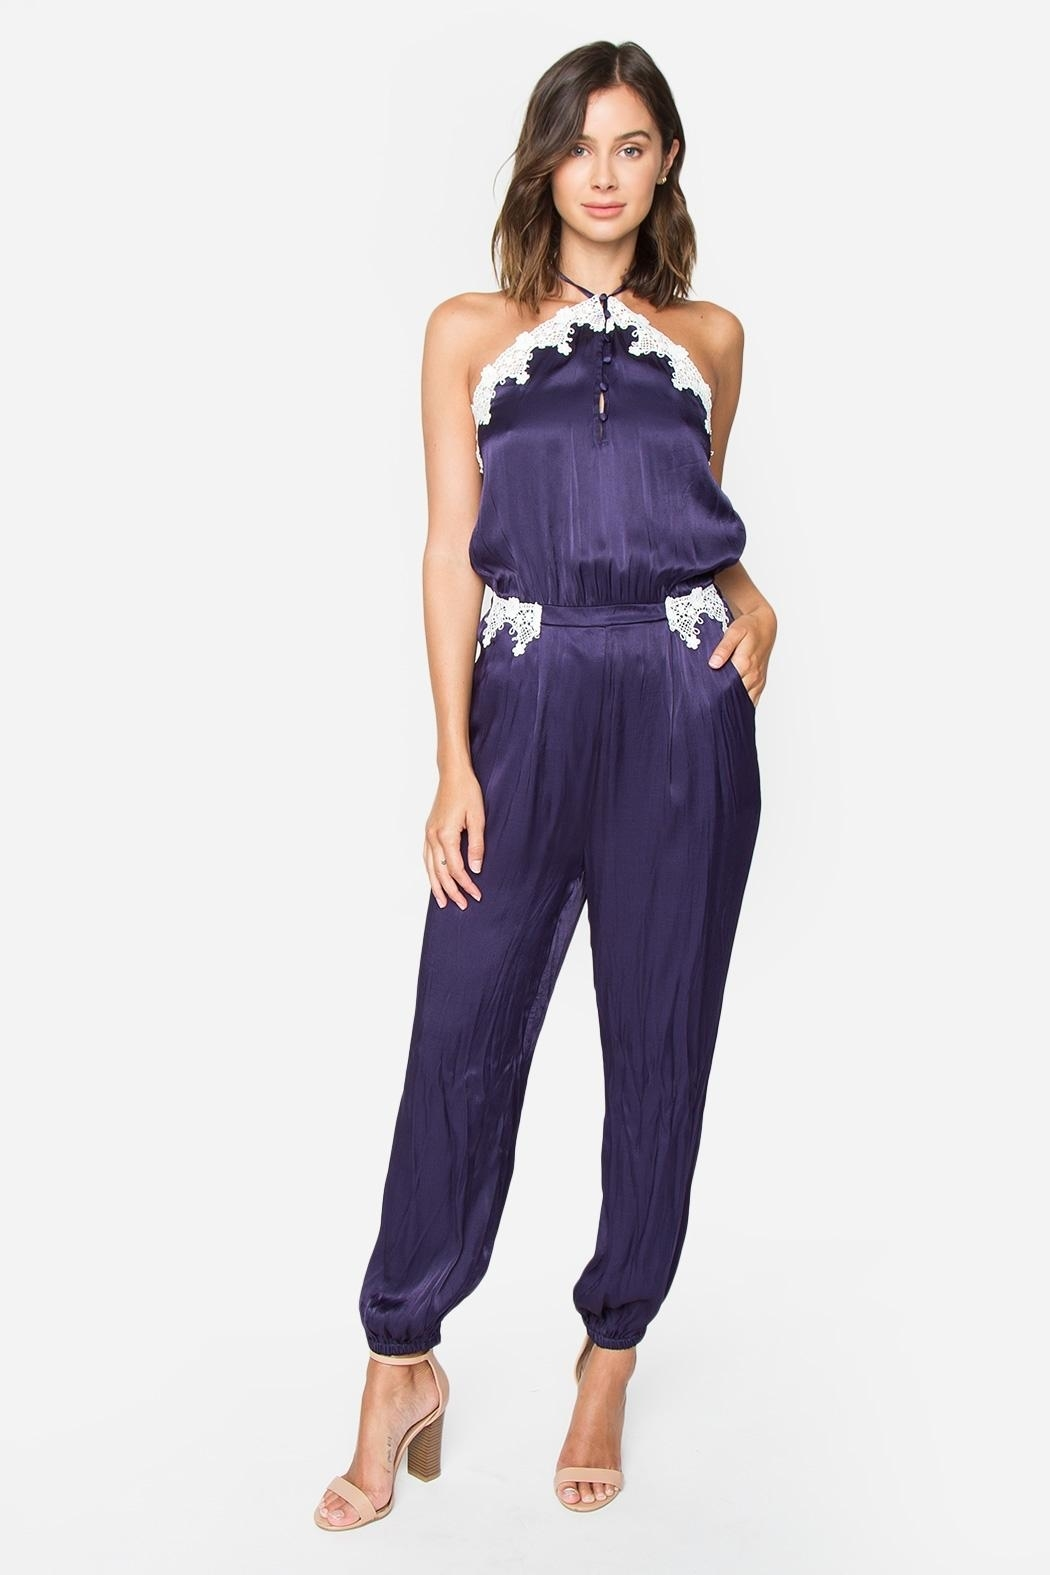 Sugarlips Satin-n-Lace Jumpsuit - Side Cropped Image